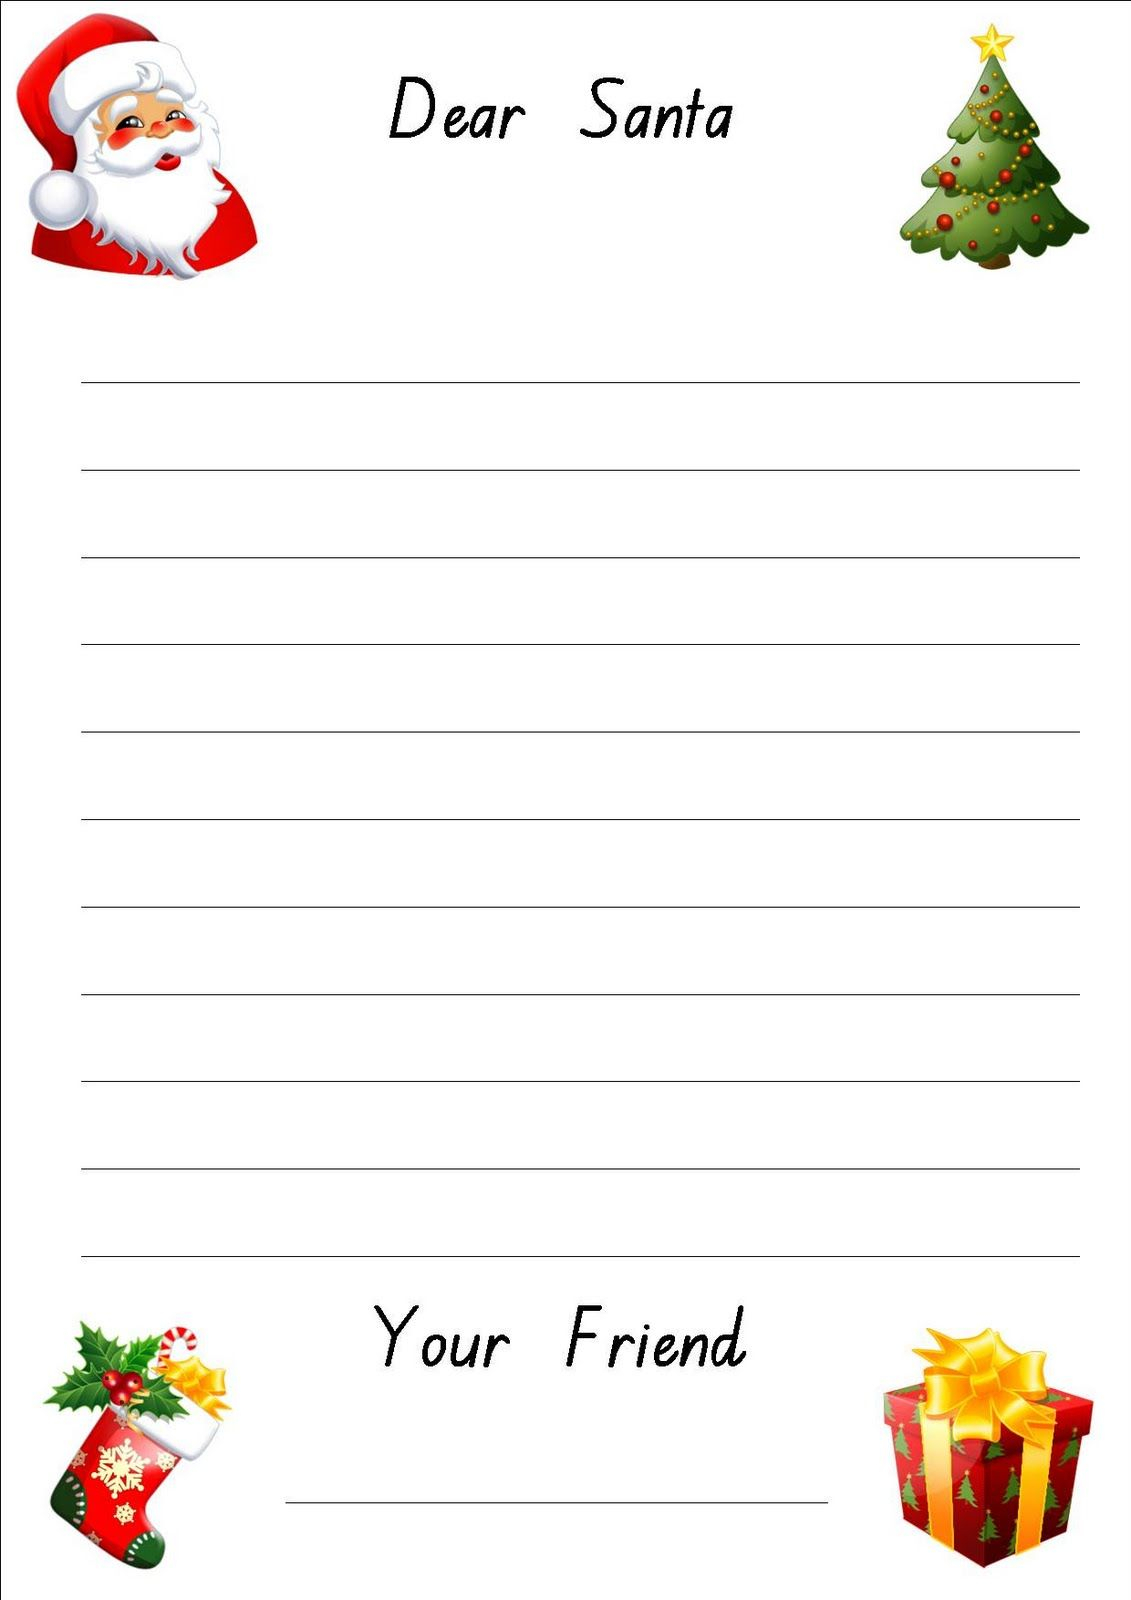 Lined Christmas Paper For Letters Do Your Kids Write